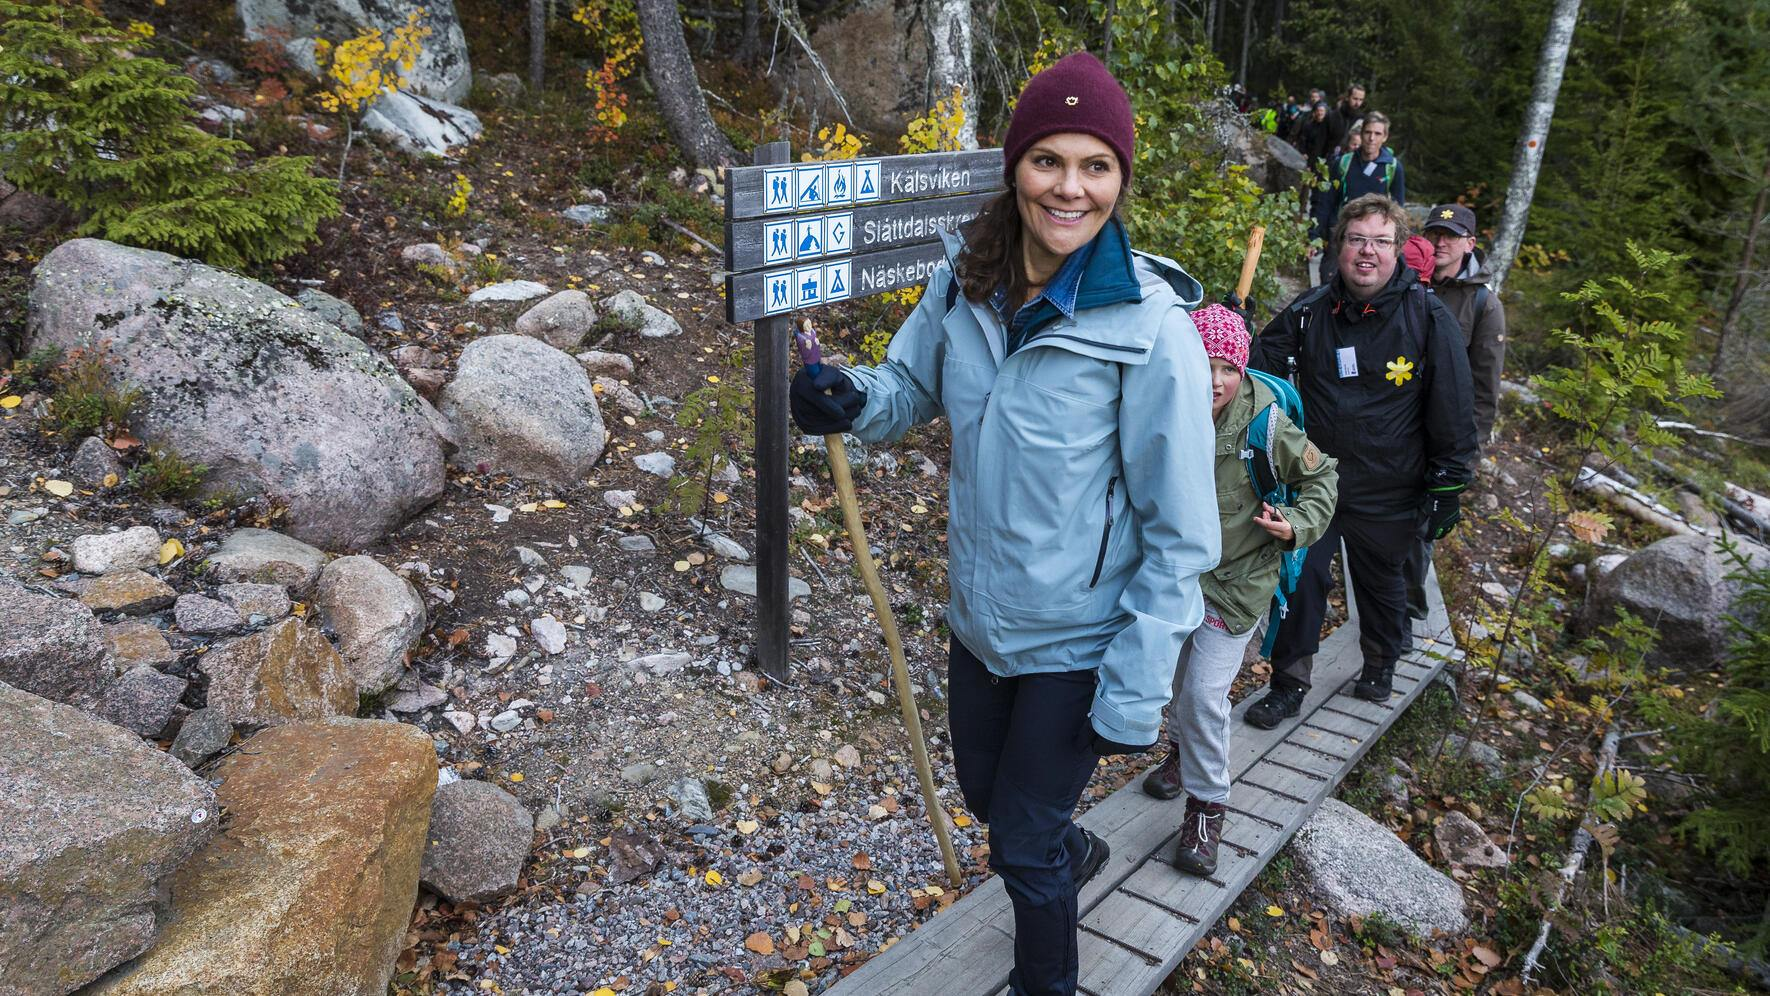 ORNSKOLDSVIK, SWEDEN - OCTOBER 03: Crown Princess Victoria of Sweden is seen hiking in Skuleskogen National Park on October 3, 2018 in Ornskoldsvik, Sweden. The Crown Princess is undertaking a series of hikes through the Swedish landscape that aim to allow her to experience different parts of Sweden during different seasons and to visualize the natural beauty Sweden has to offer. (Photo by MICHAEL CAMPANELLA/WireImage)